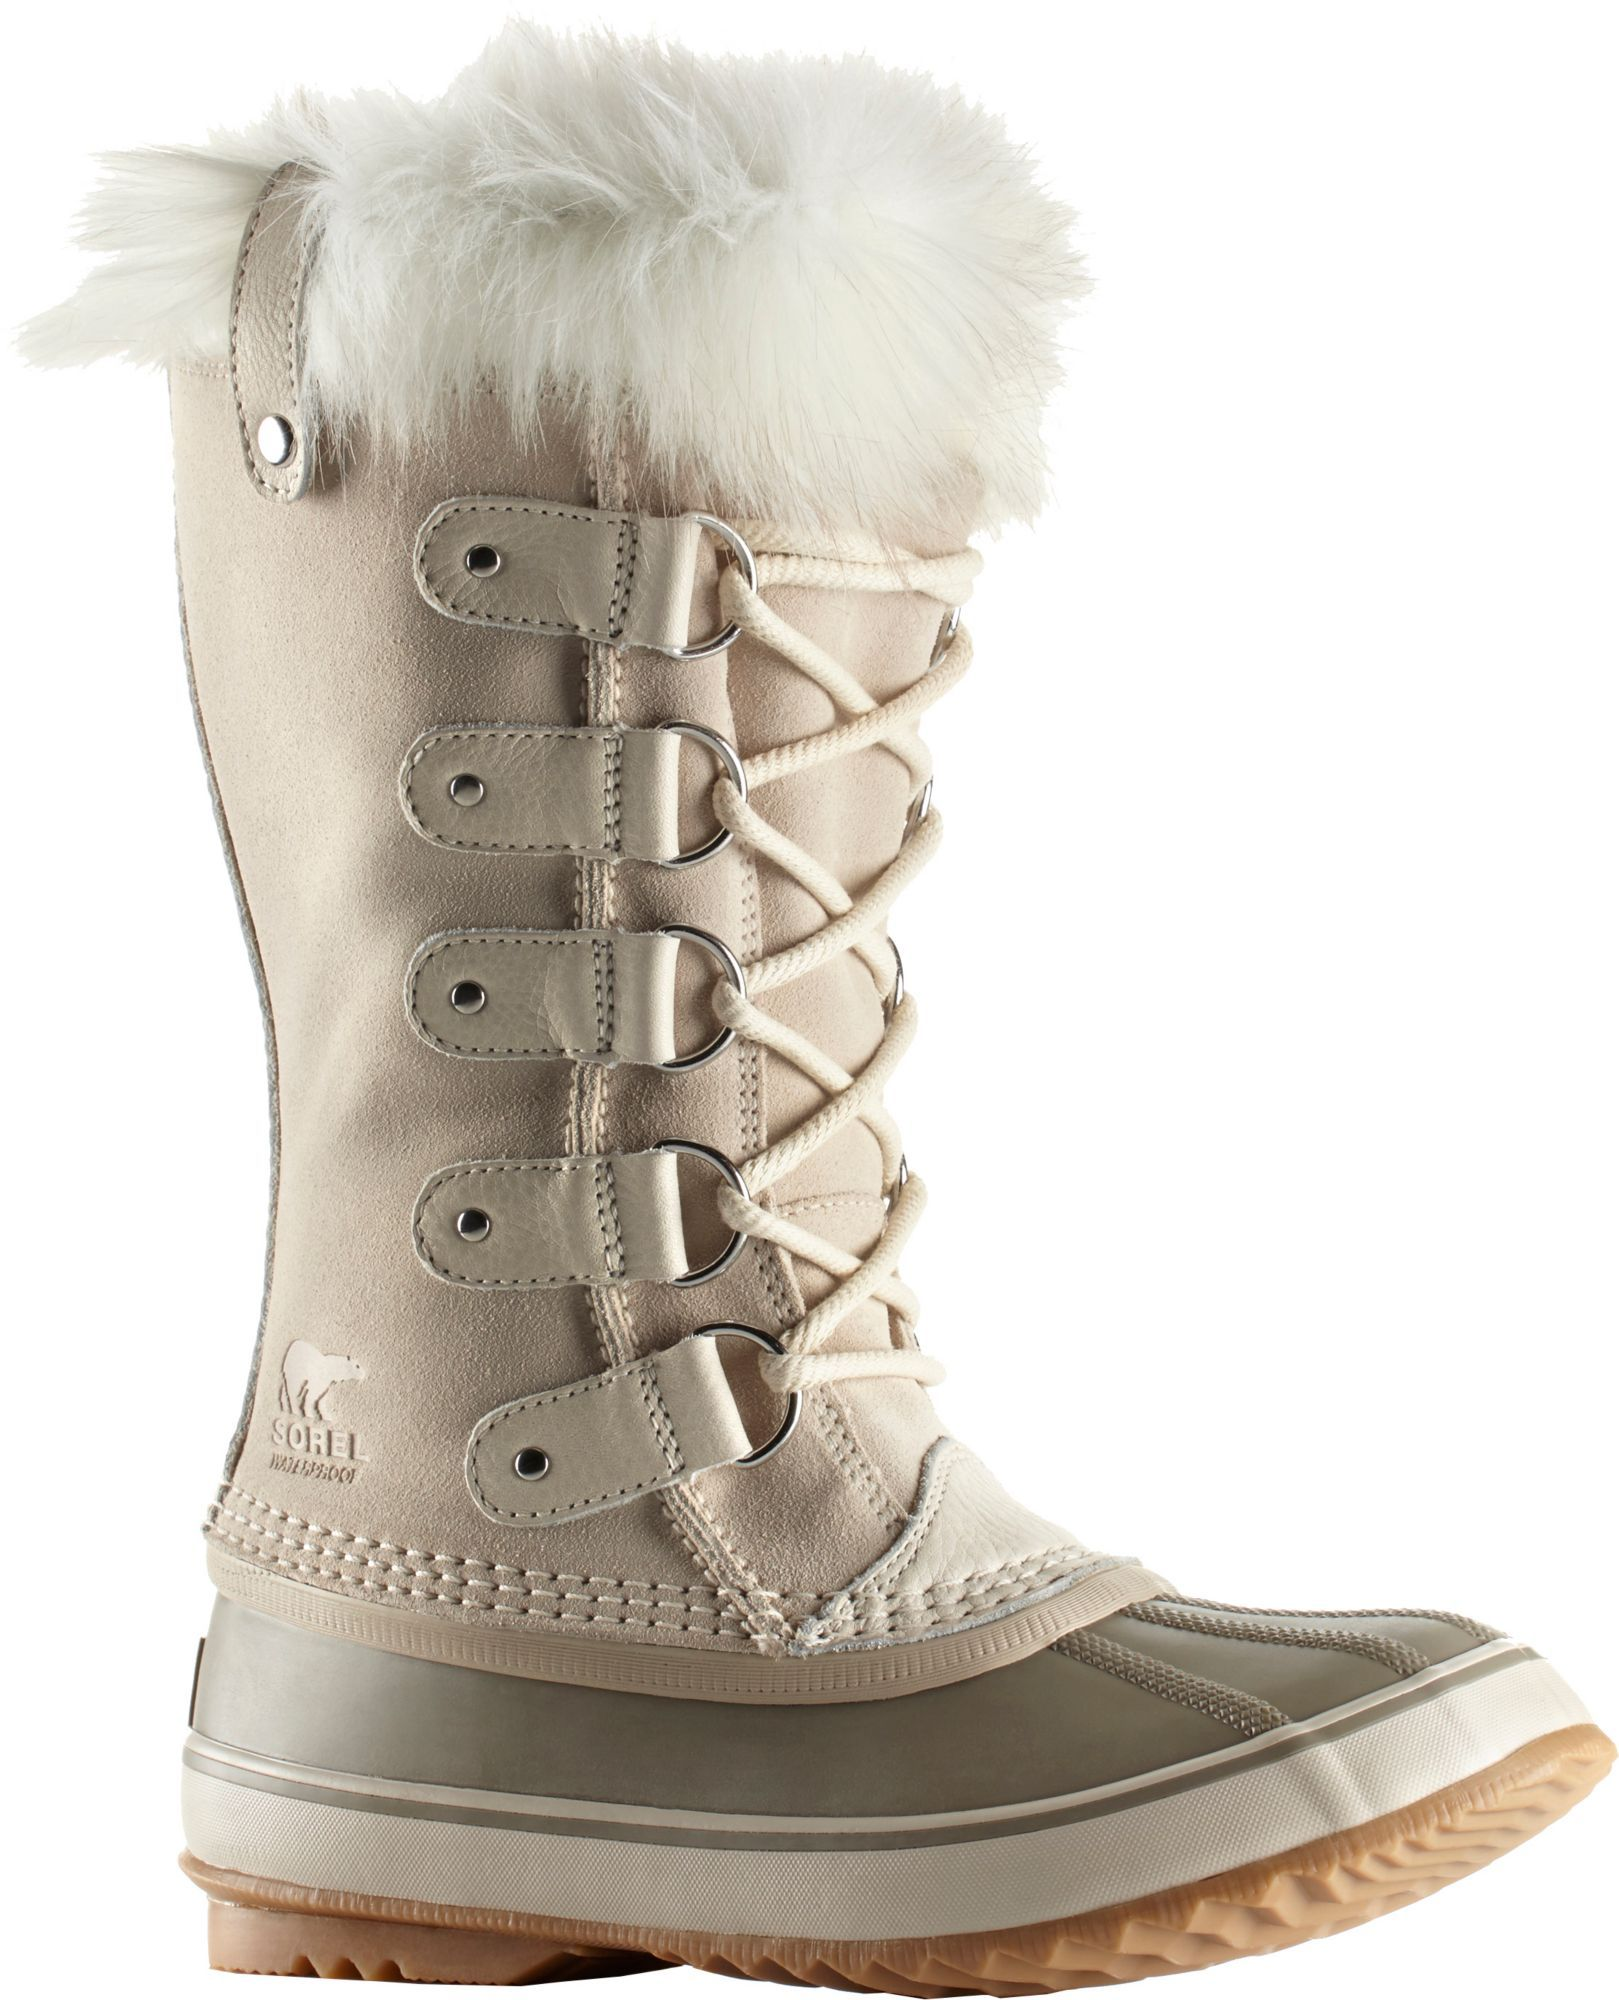 a5449aa8a9b7a Sorel Women's Joan of Arctic Insulated Waterproof Winter Boots, Size: 10.0,  Fawn